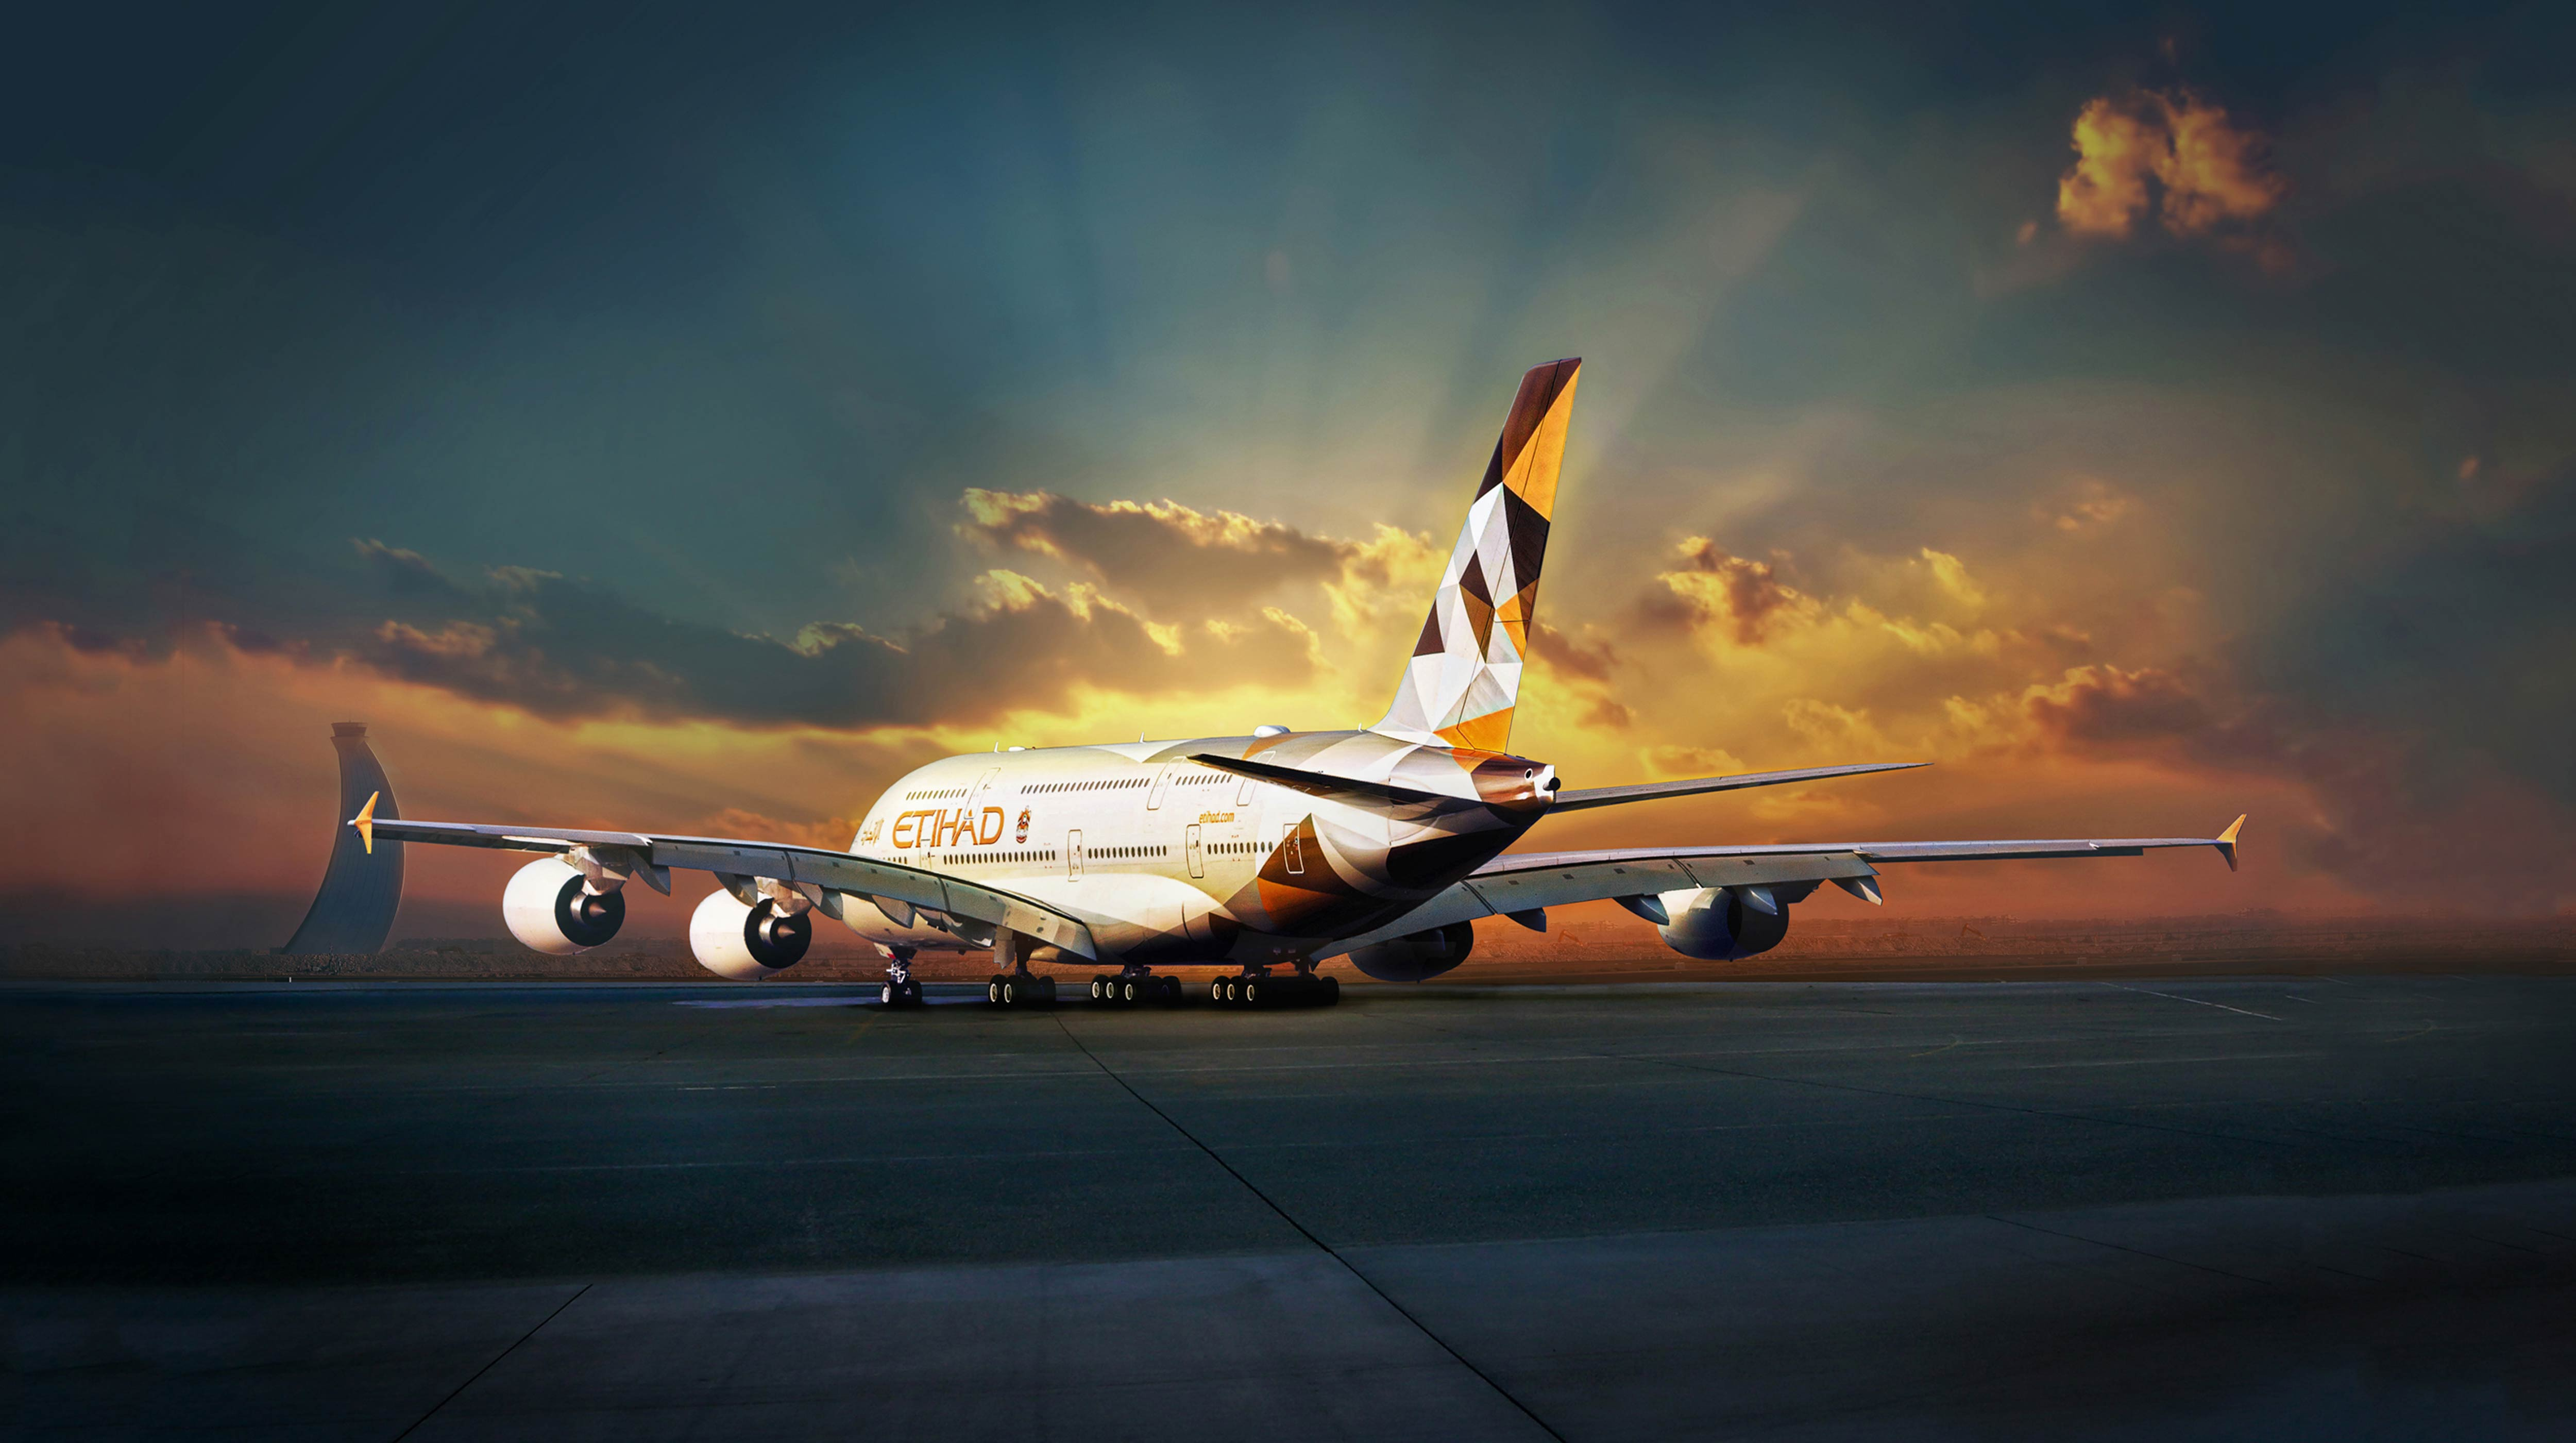 Etihad airways – The UAE's  national airline